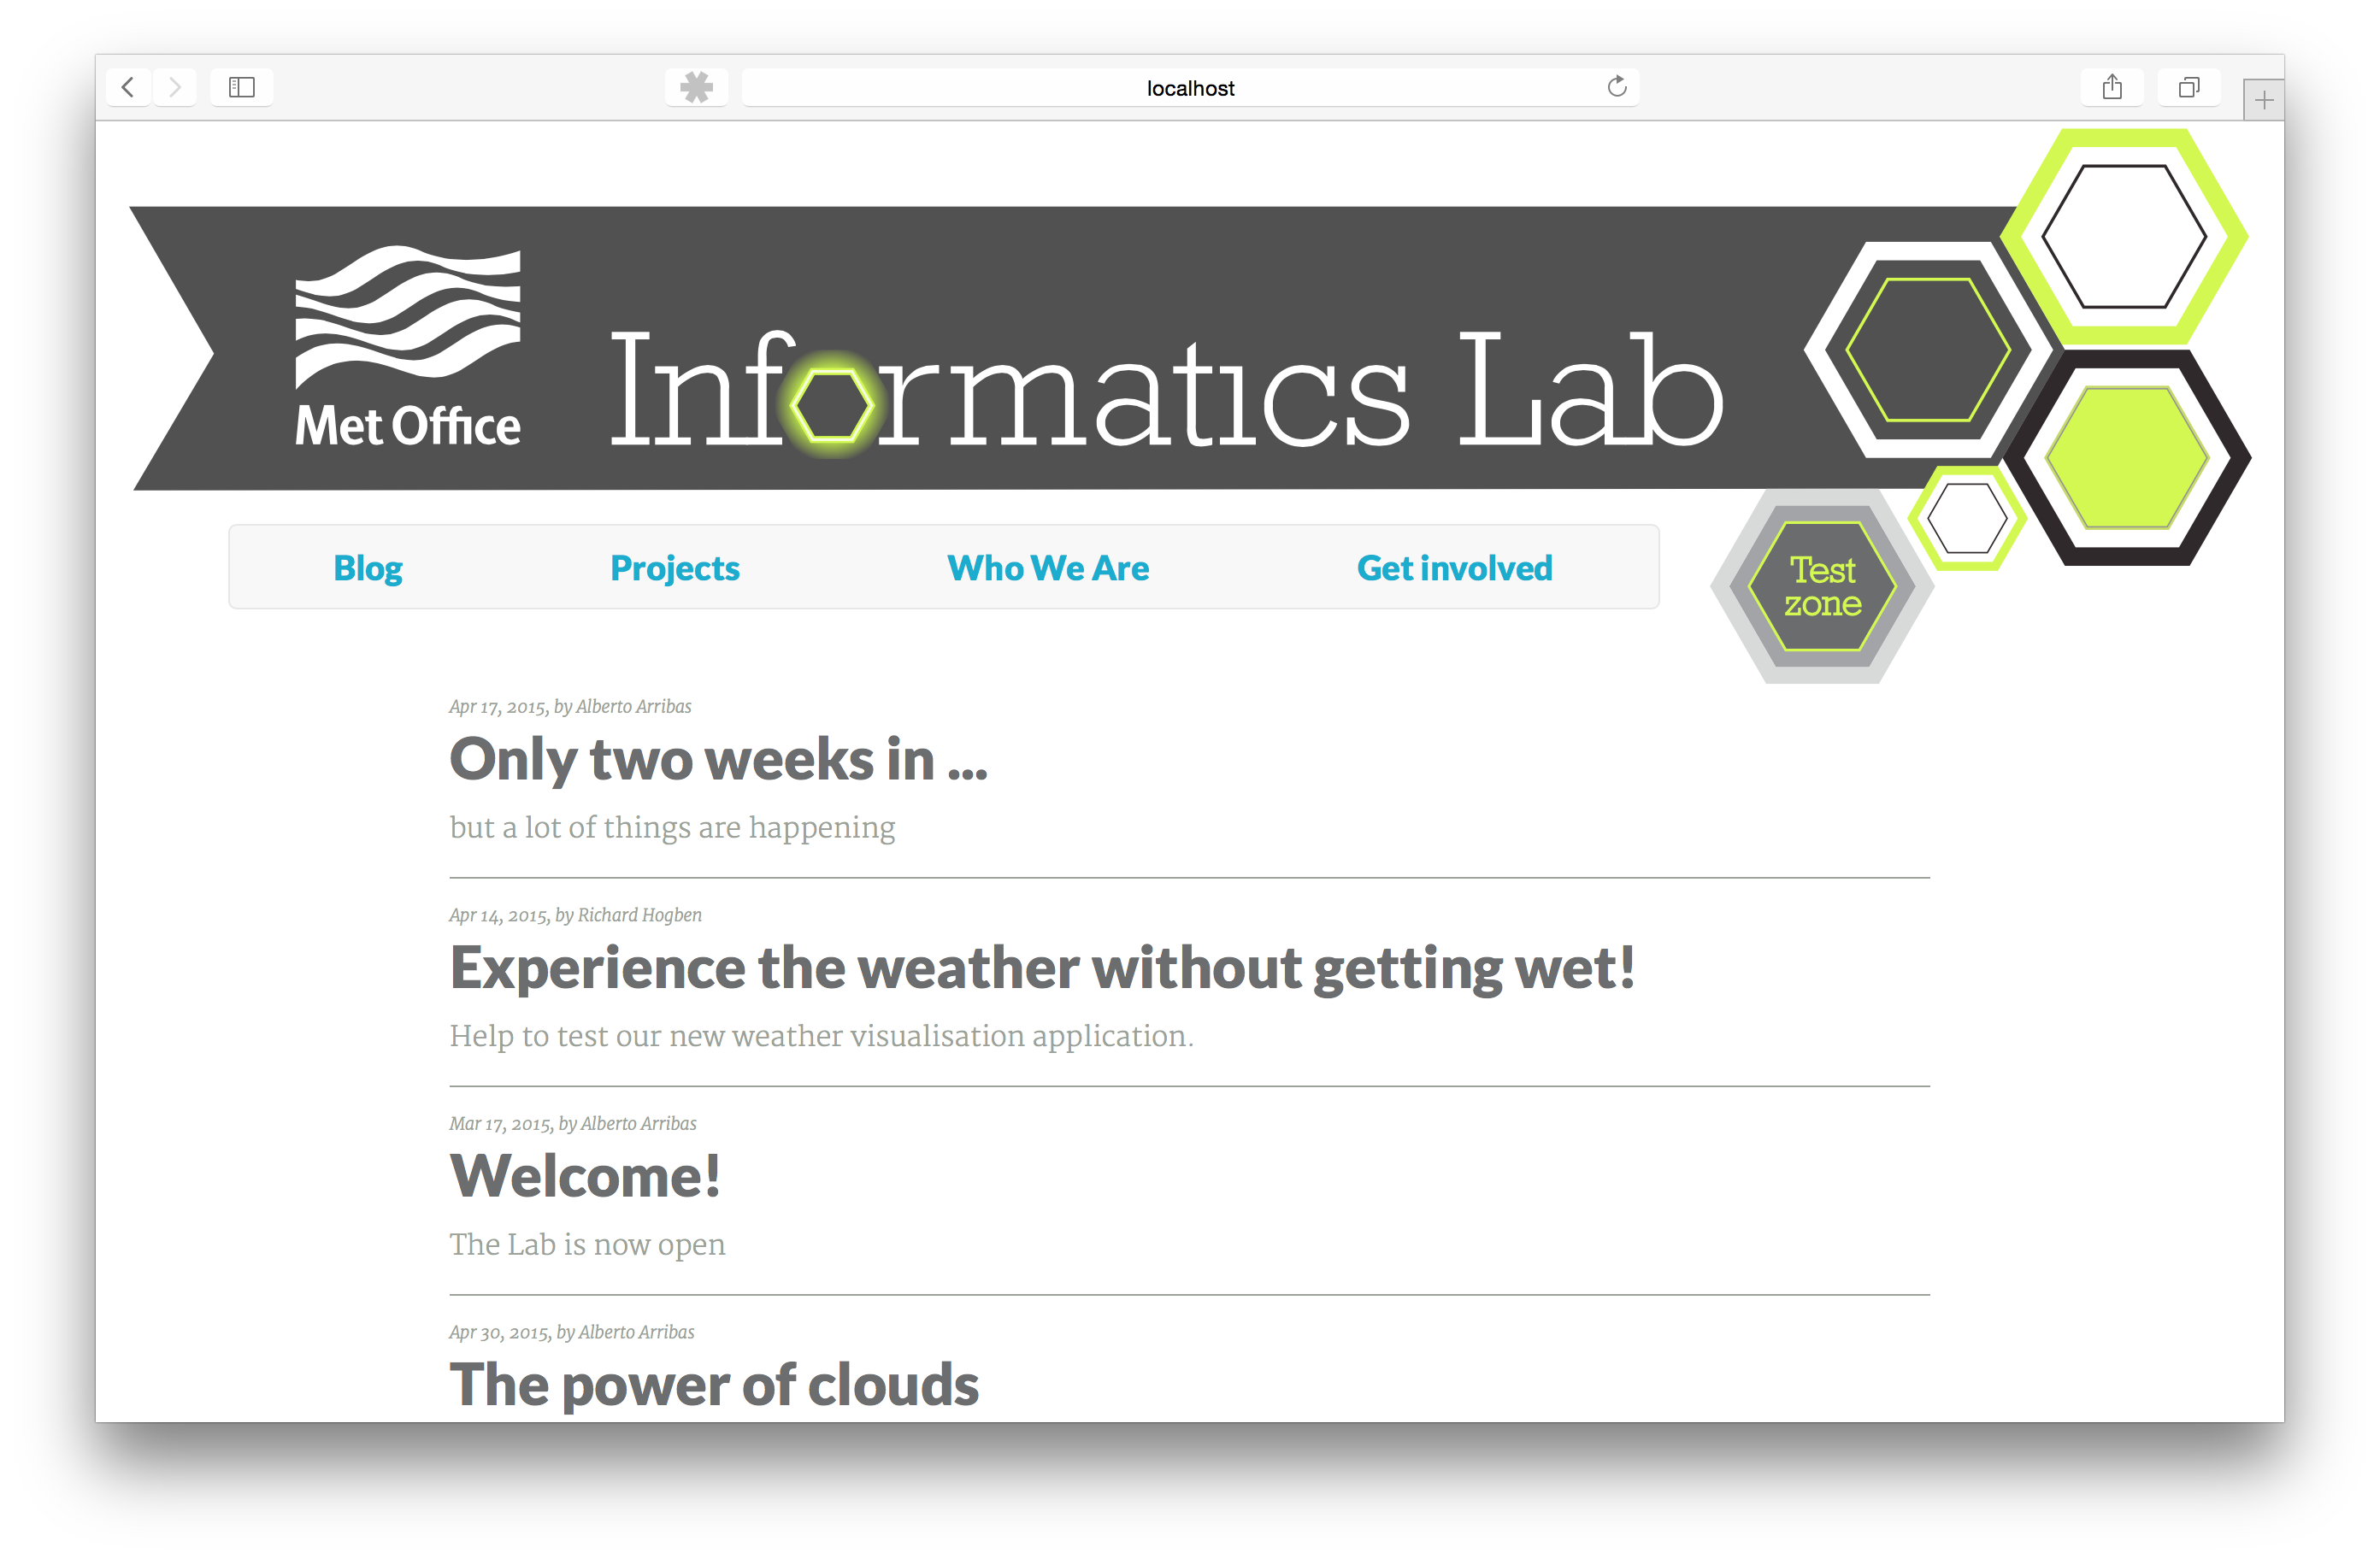 Informatics Lab blog v1.0